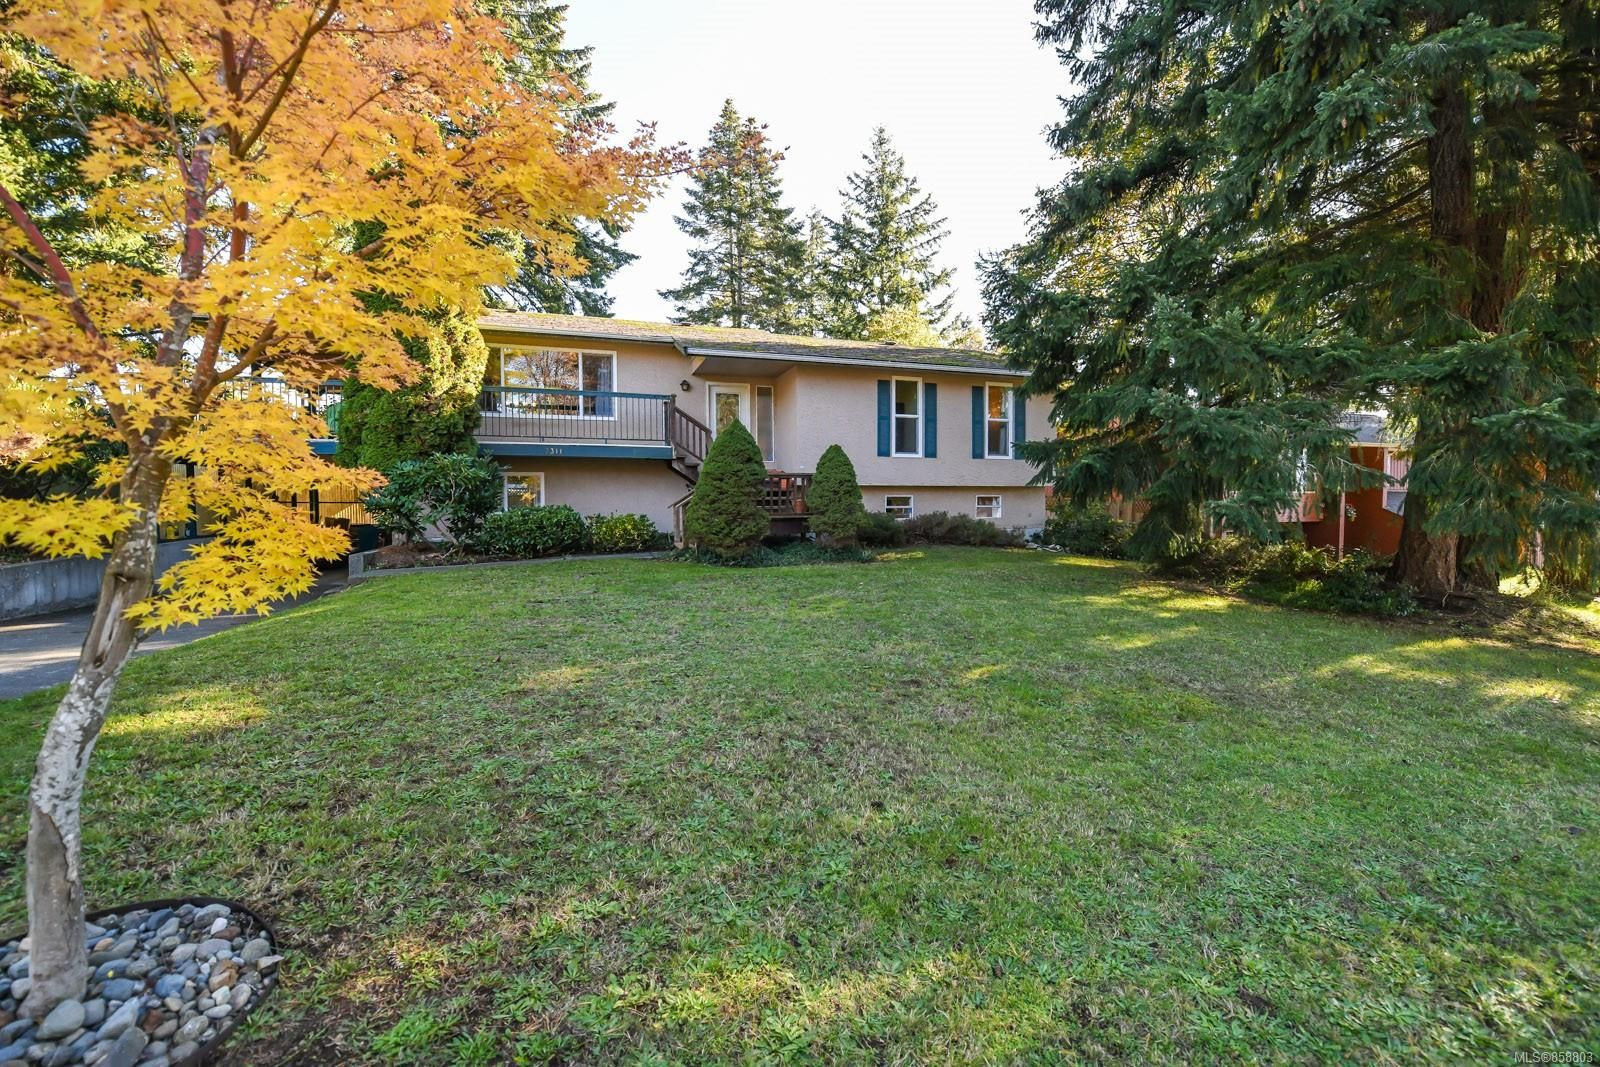 Main Photo: 2311 Strathcona Cres in : CV Comox (Town of) House for sale (Comox Valley)  : MLS®# 858803